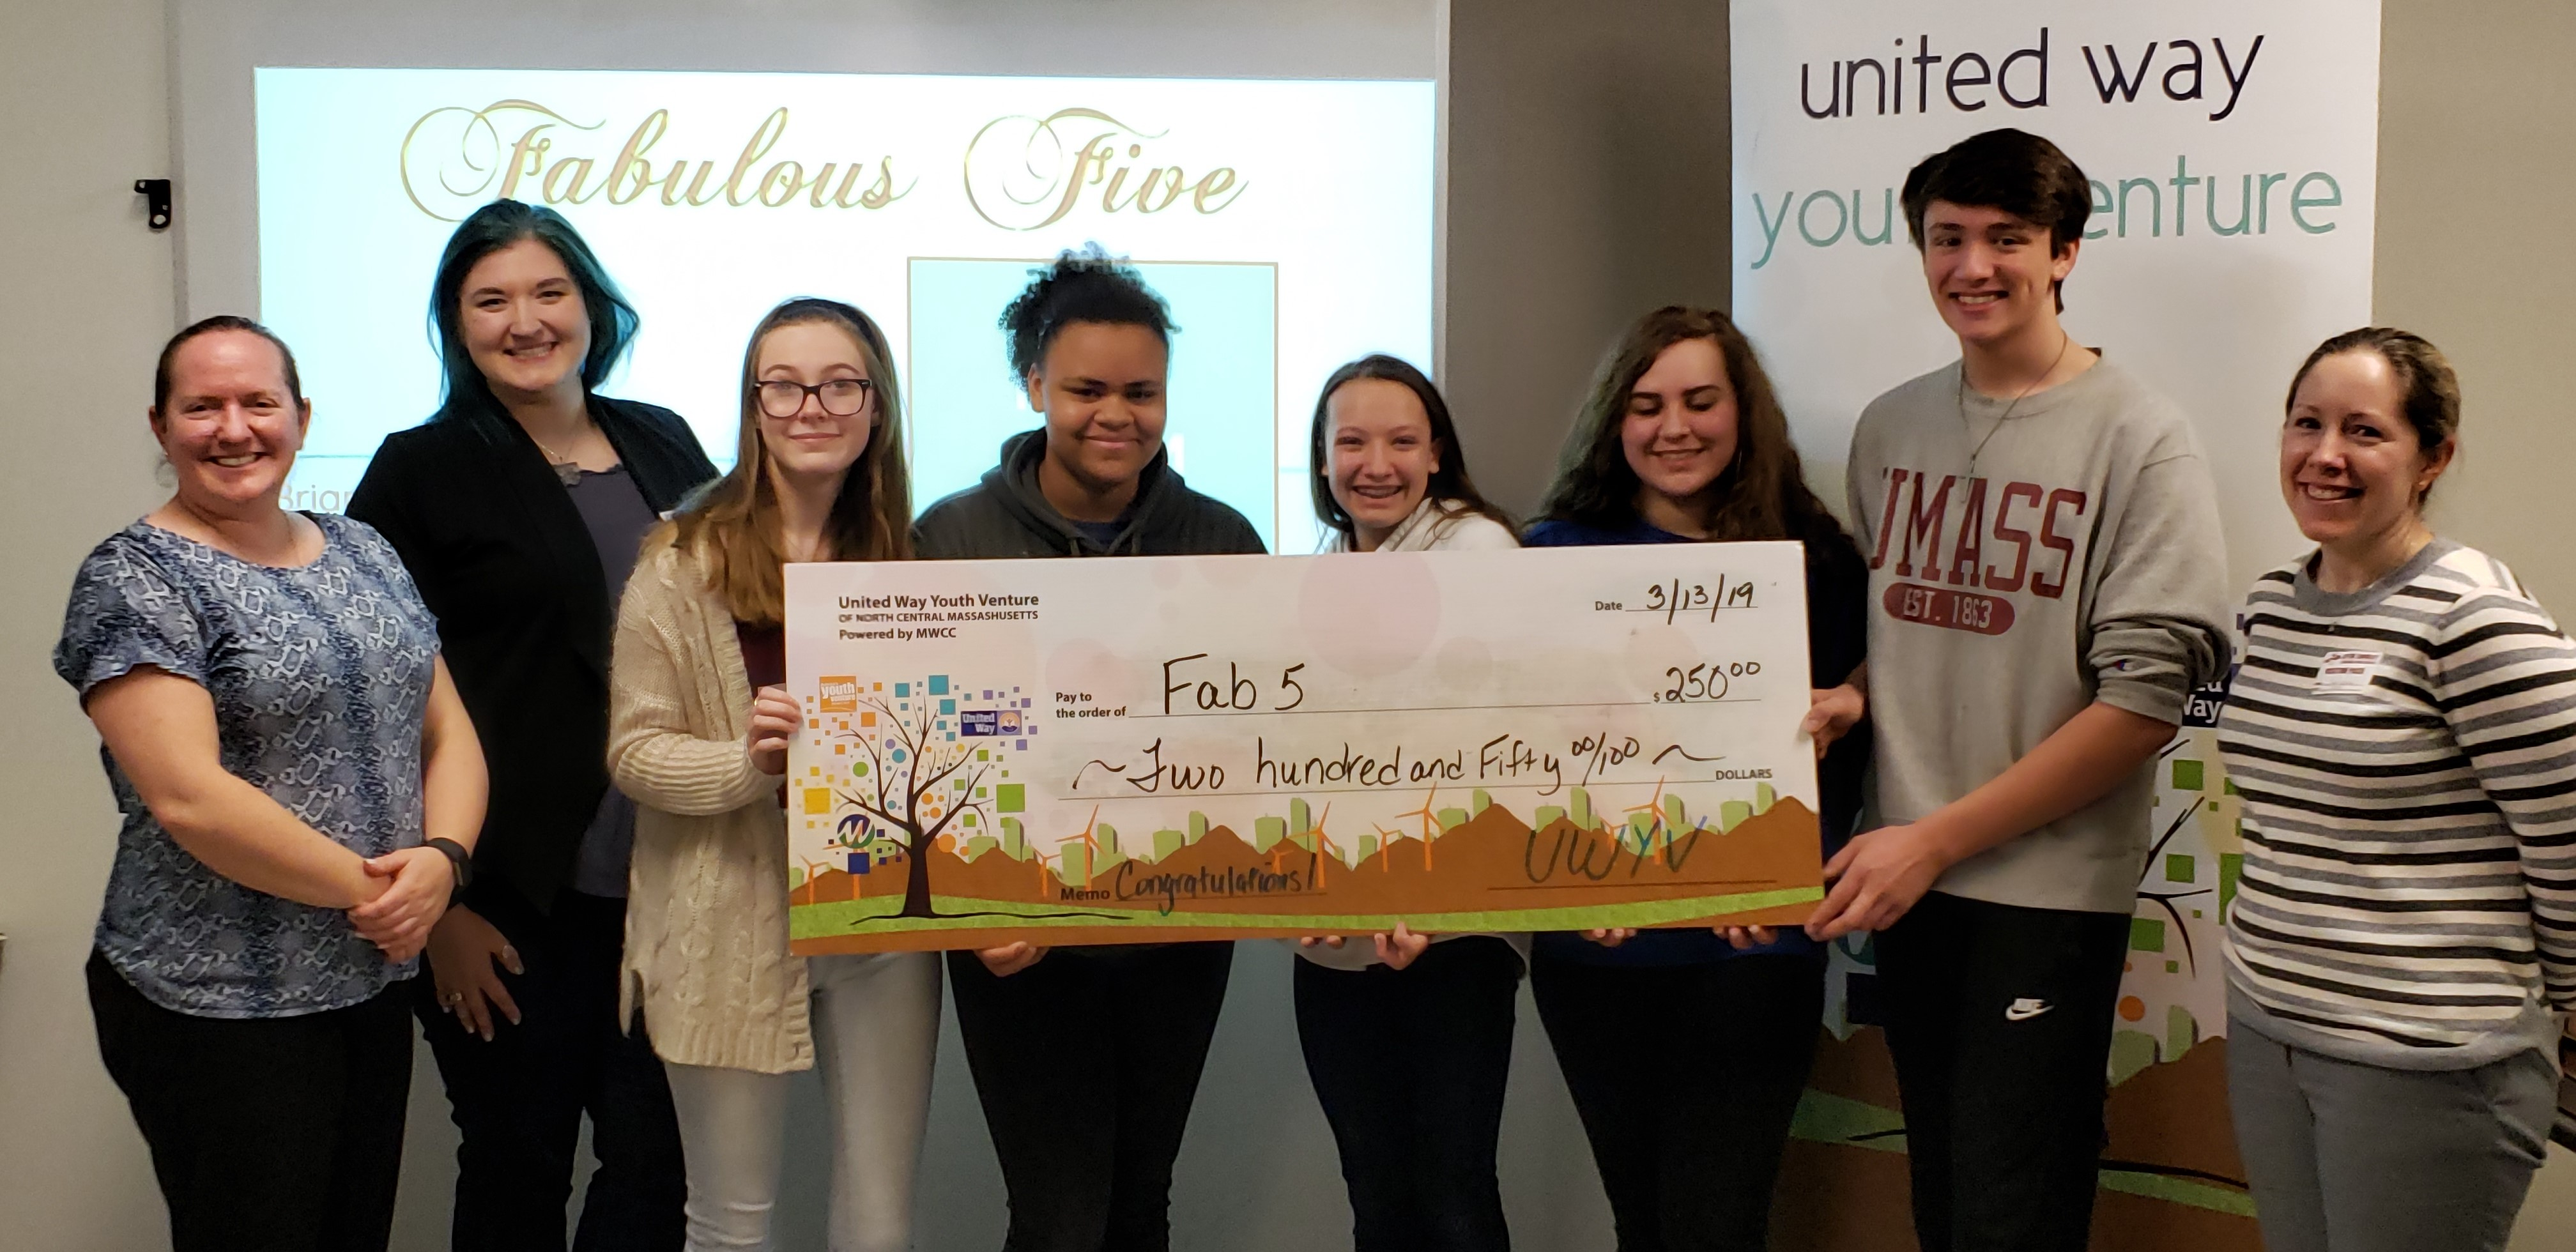 The Venture Team Fab 5 holding a big check for $250